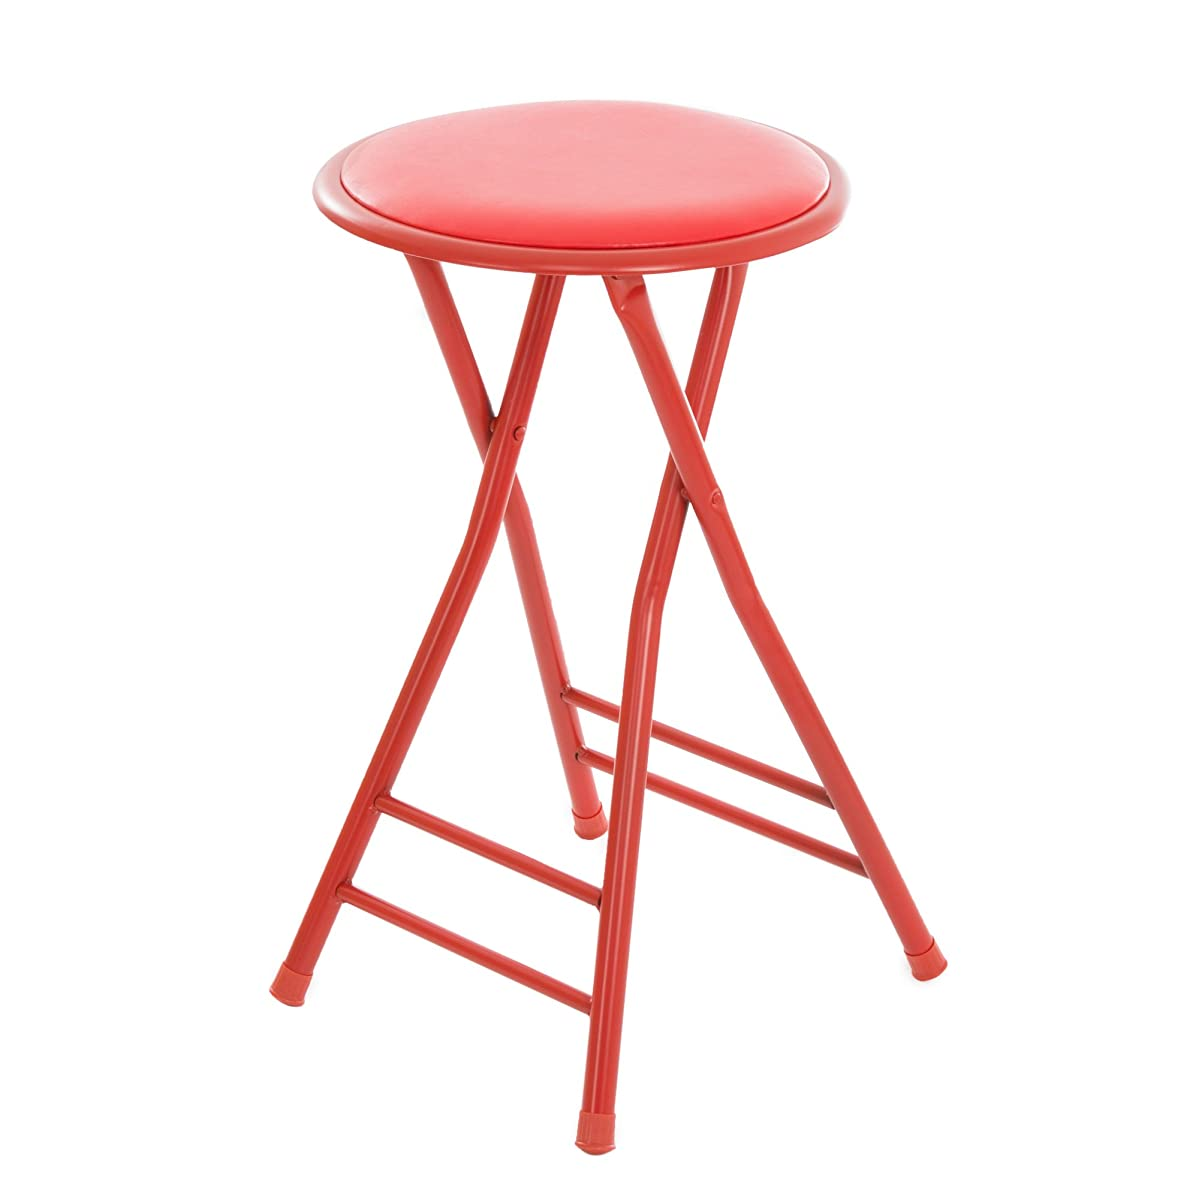 Trademark Home Folding Stool – Heavy Duty 24-Inch Collapsible Padded Round Stool with 300 Pound Limit for Dorm, Rec or Gameroom (Red)